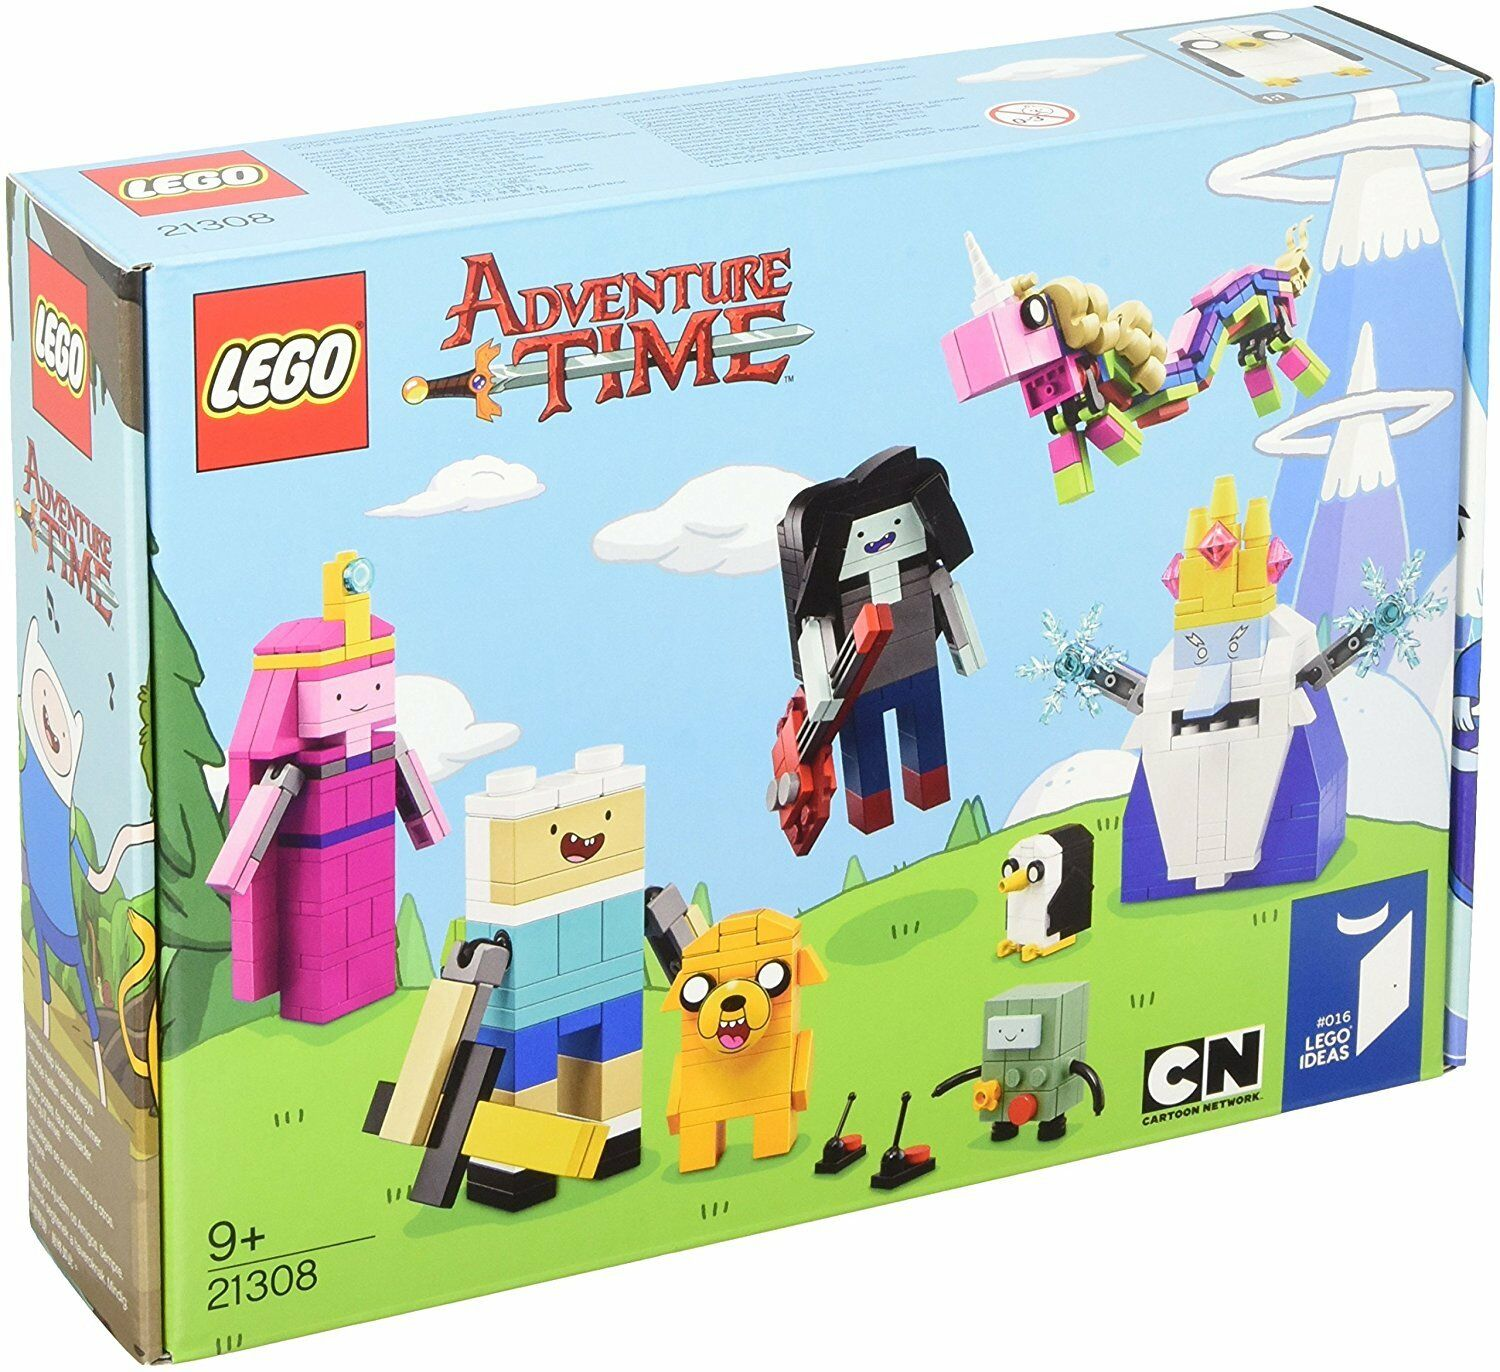 LEGO Ideas 21308 Adventure Time Abenteuerzeit mit Finn Jake Cartoon Network